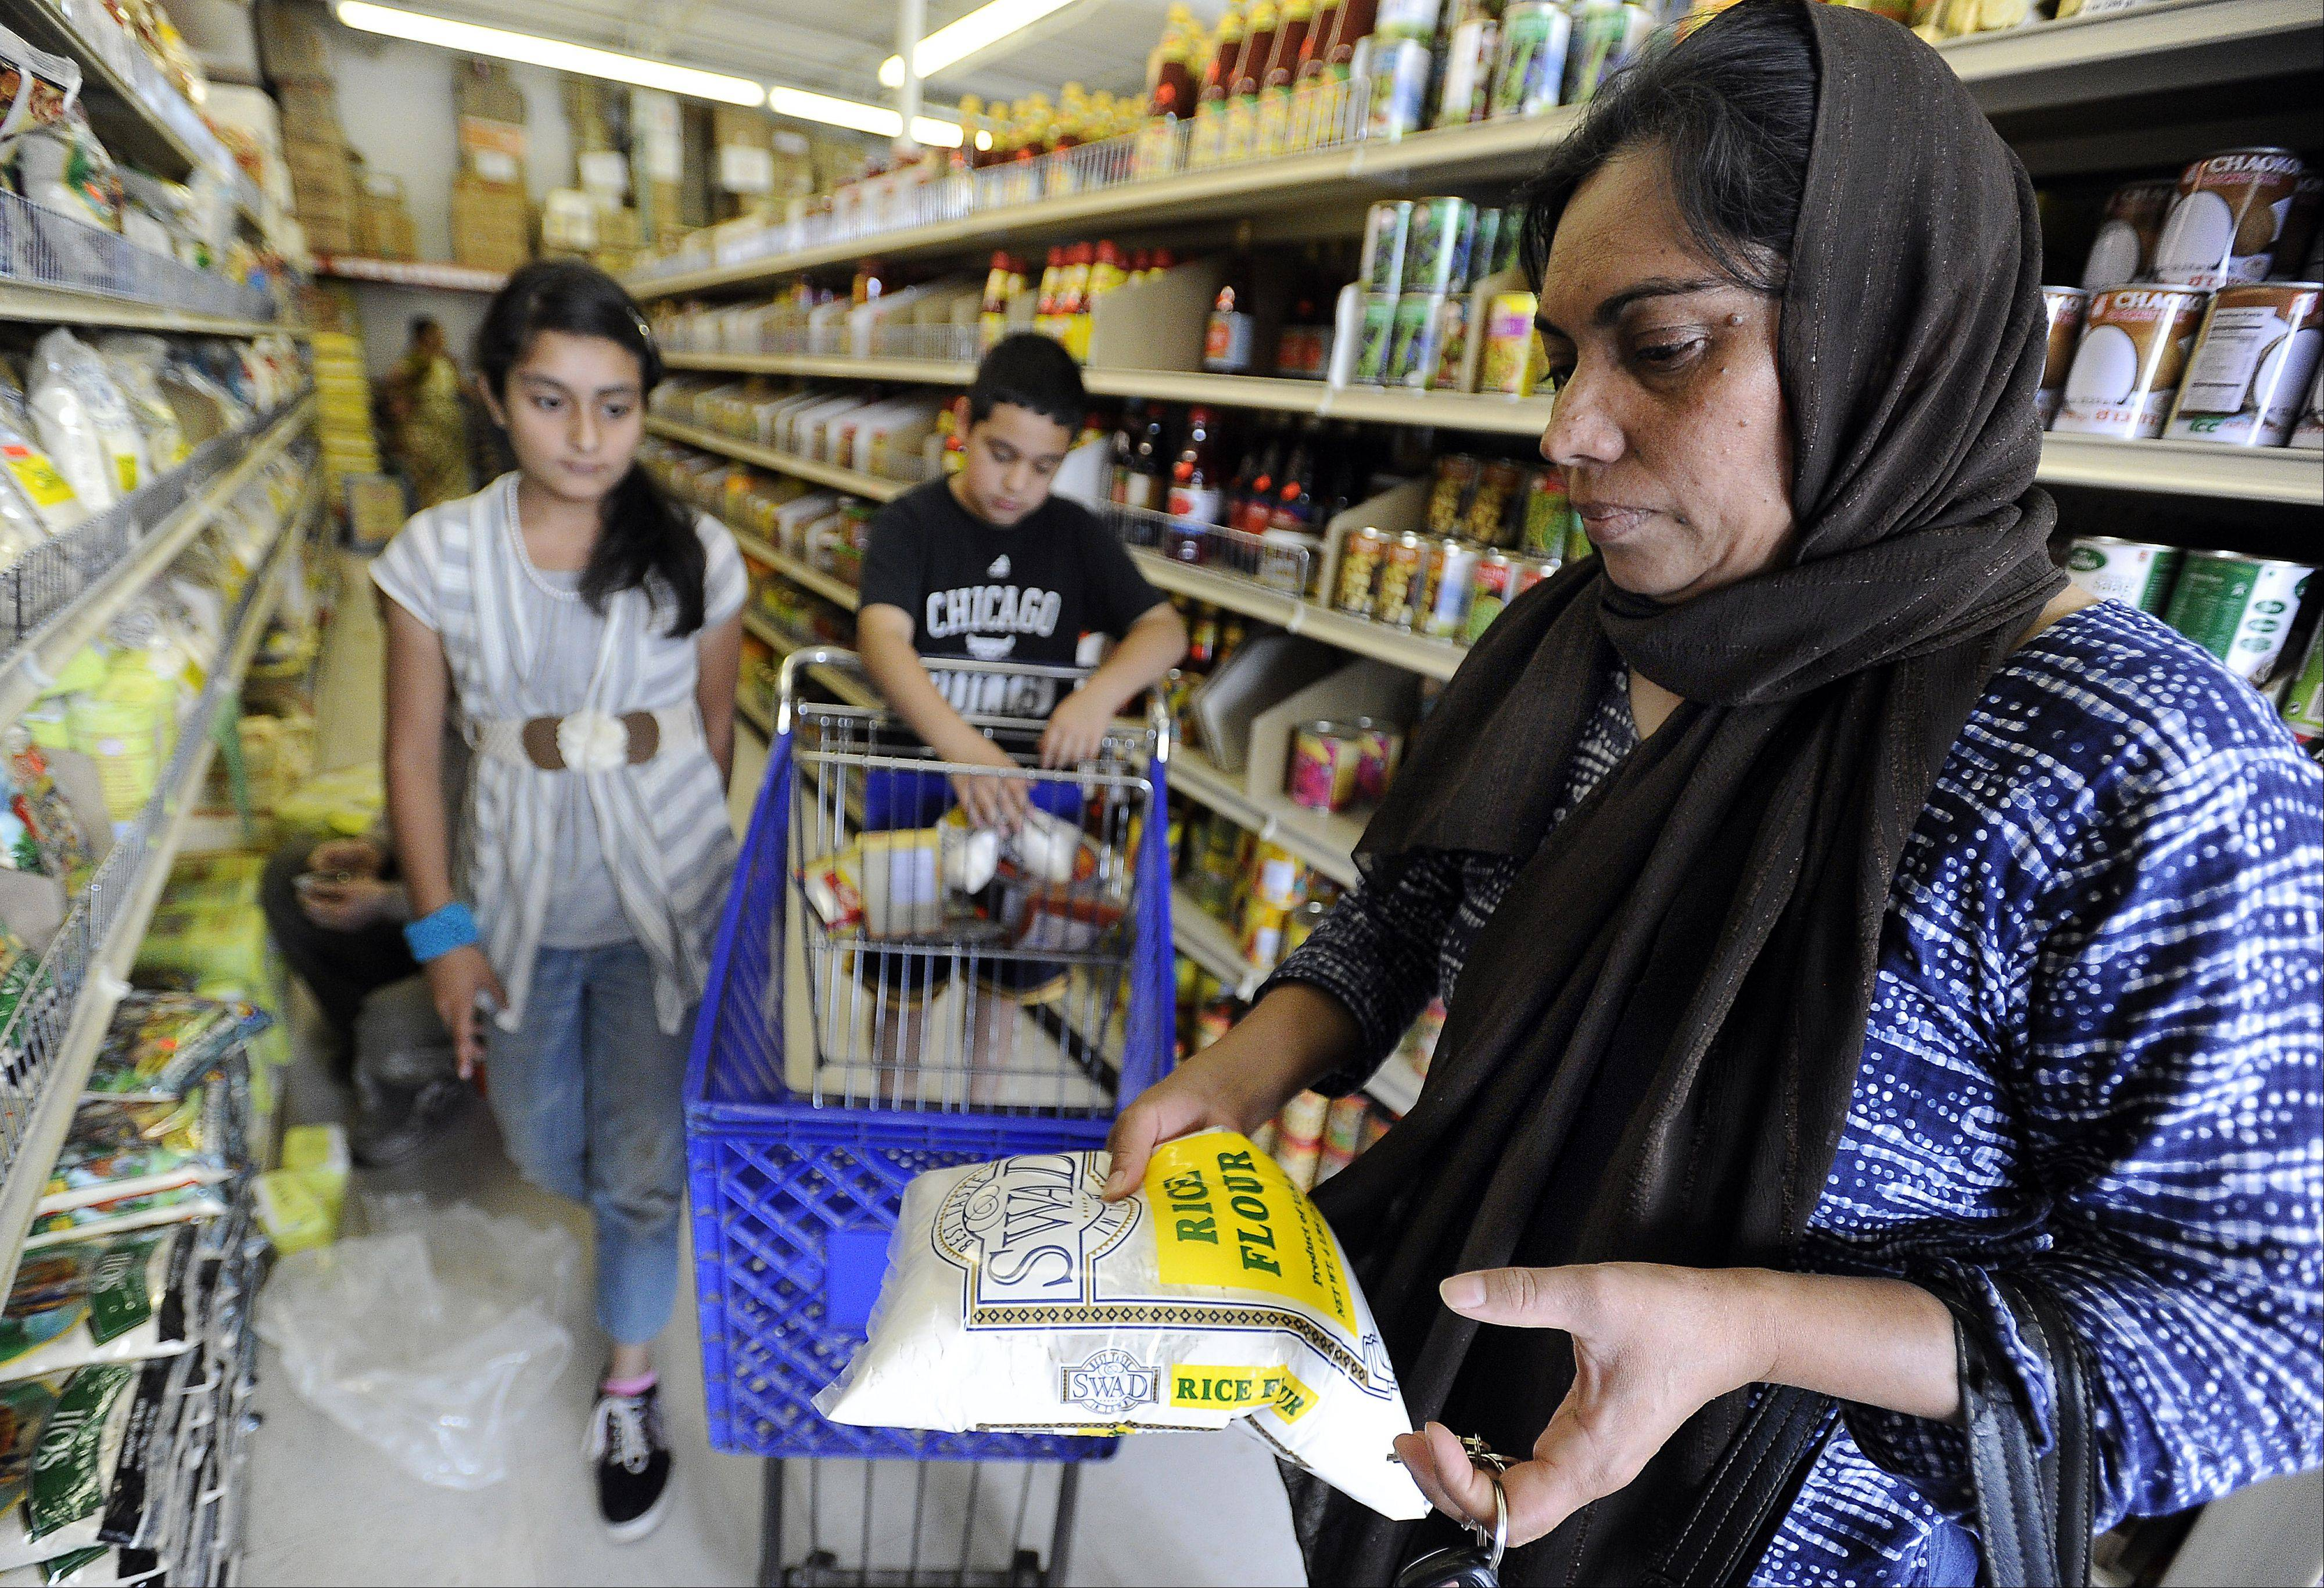 Naheed Umar of Hoffman Estates and her children, Zahid, 11, and Nameera, 10, shop for foods they will eat when they break their fast.